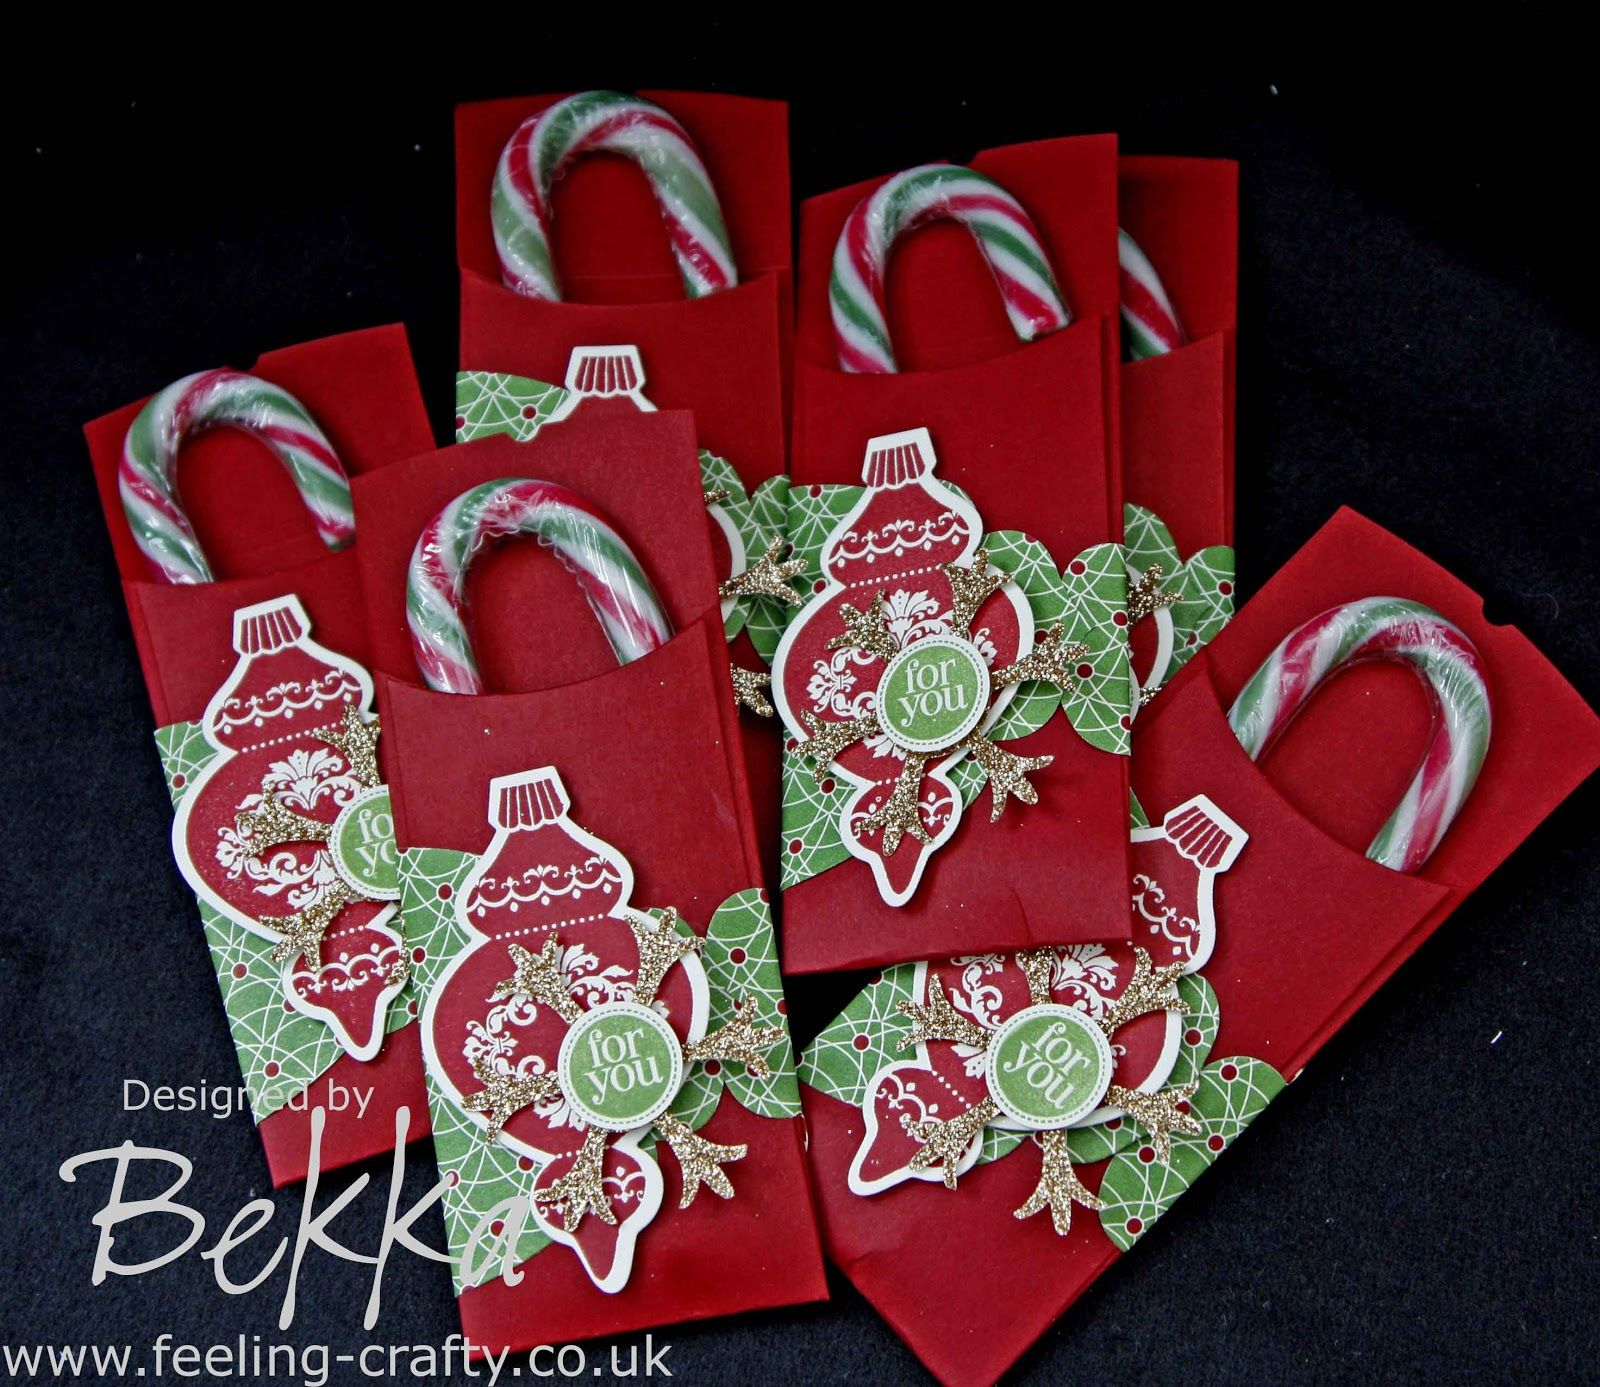 Cute candy cane holder by stampin 39 up demonstrator bekka for Christmas card holder craft project